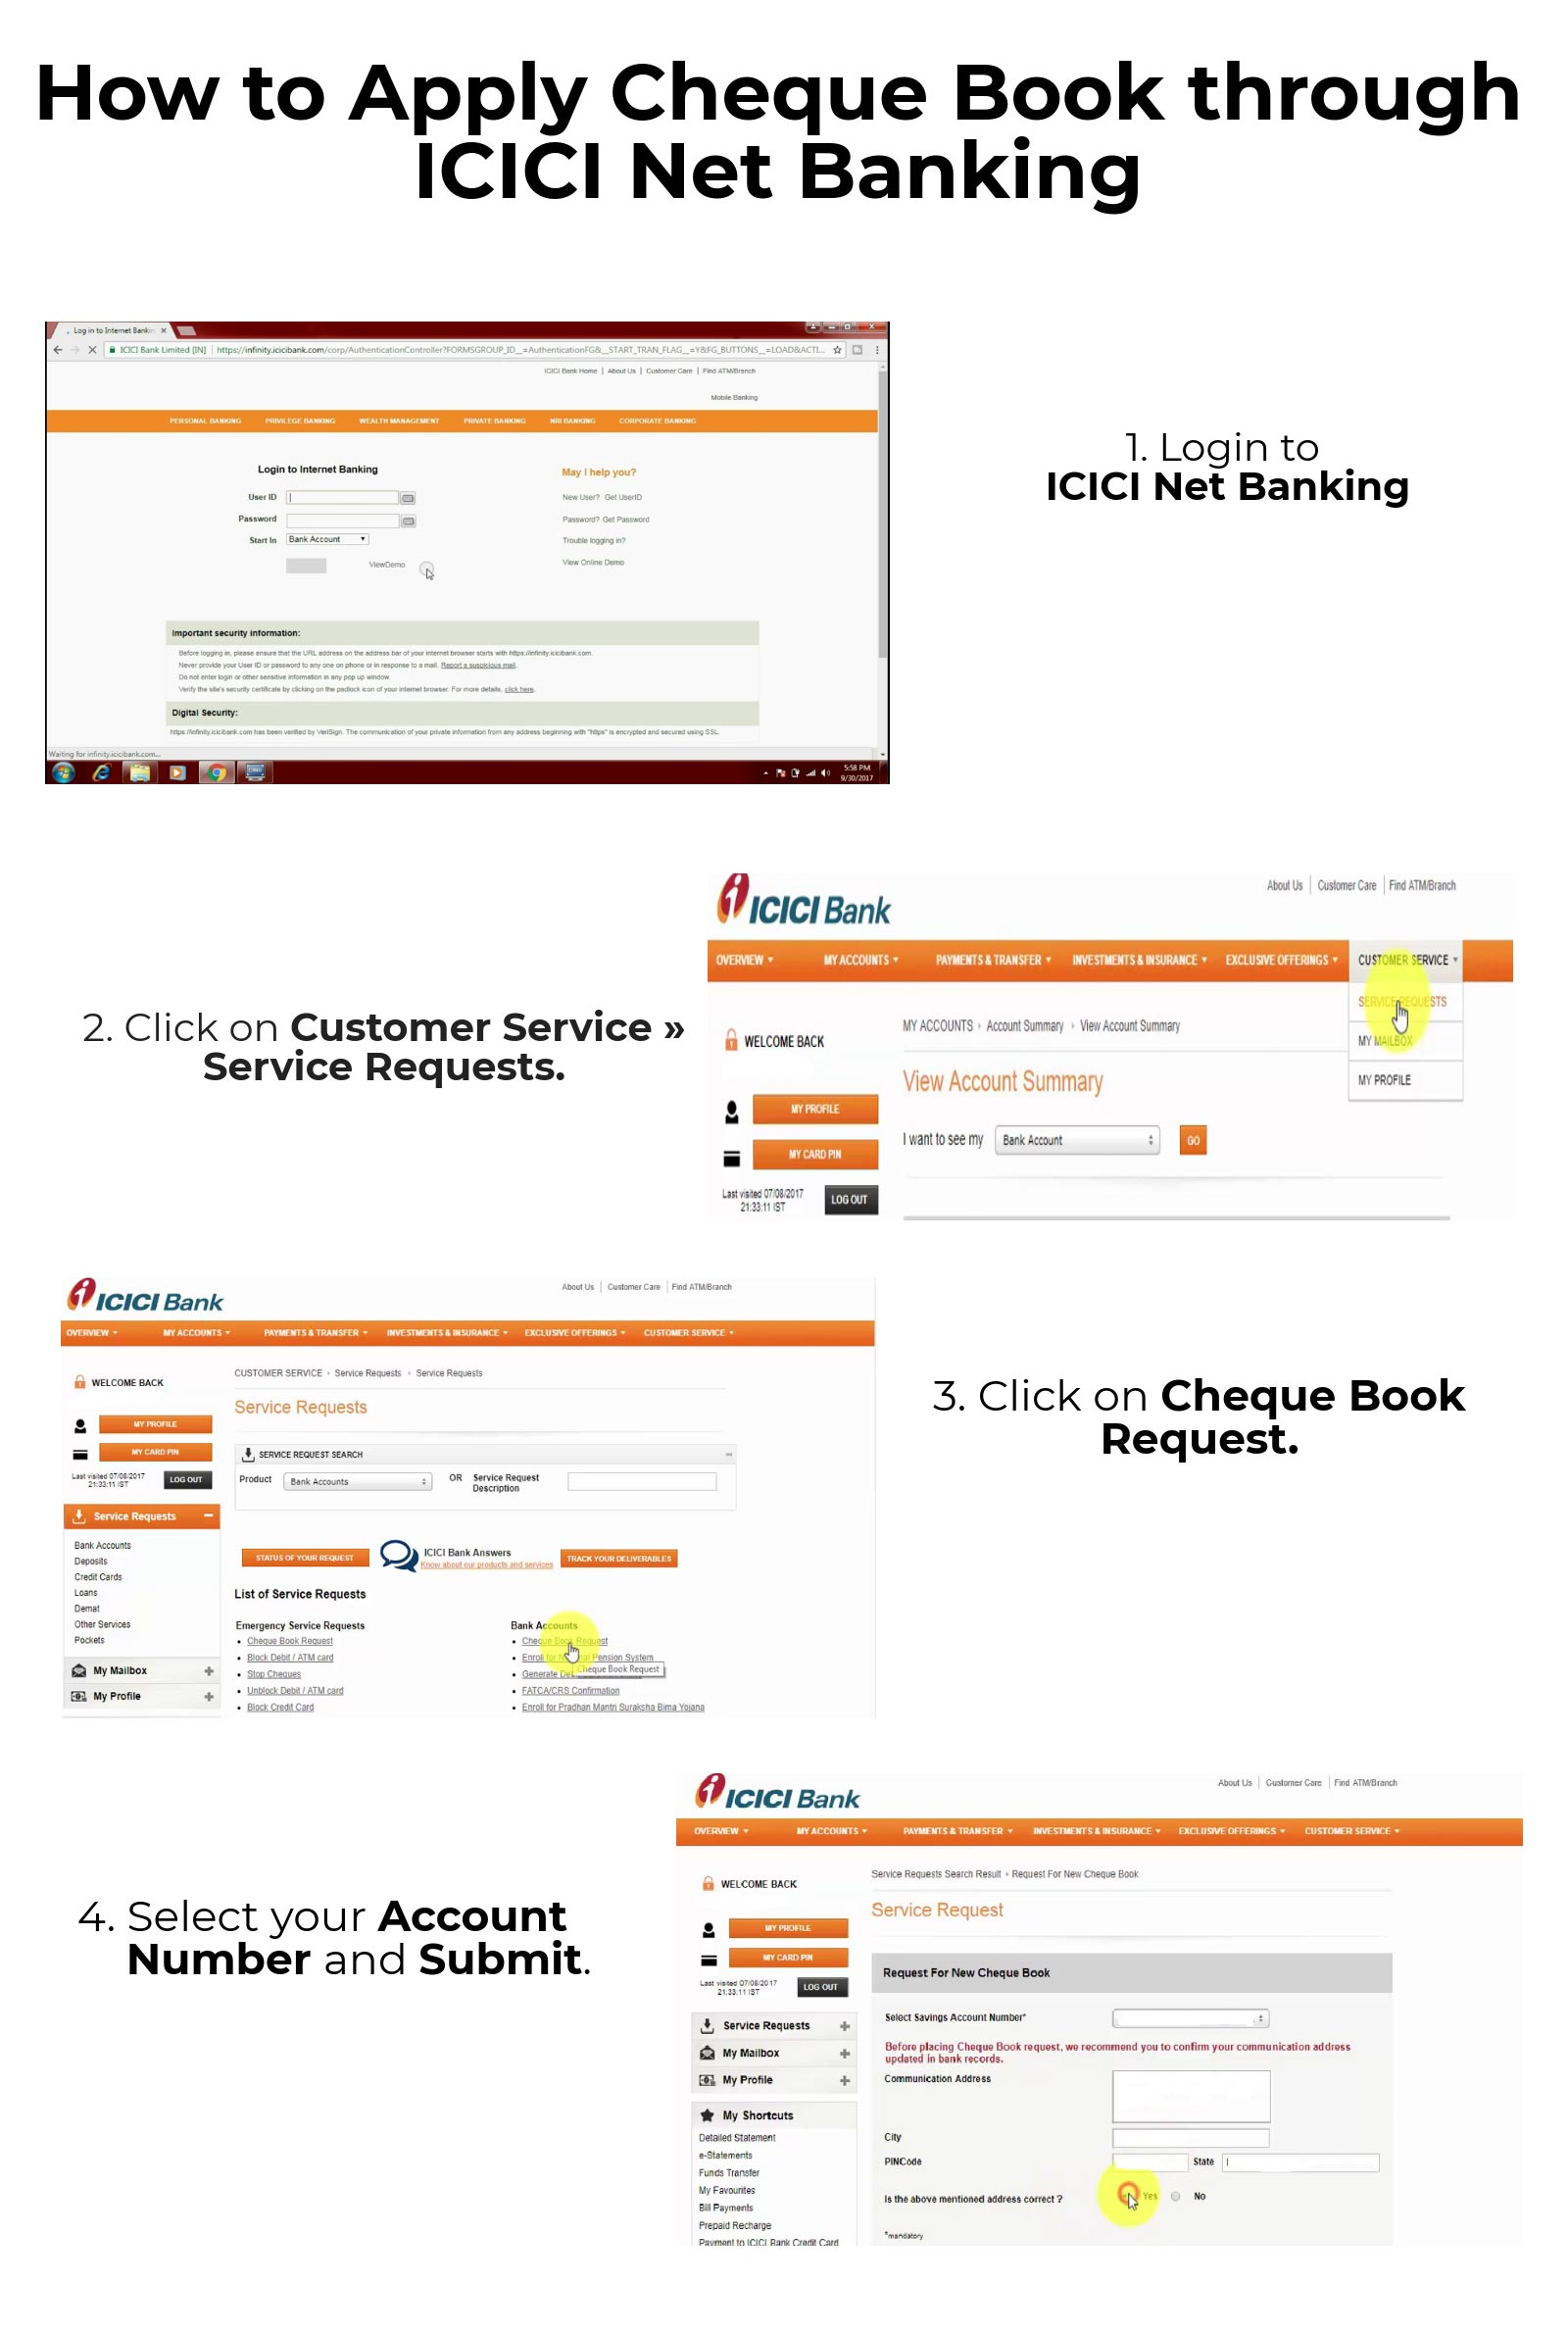 1.   Login to ICICI Net Banking                     2.  Click on Customer Service » Service Requests.                     3.  Click on Cheque Book Request.                     4.  Select your Account Number and Submit.